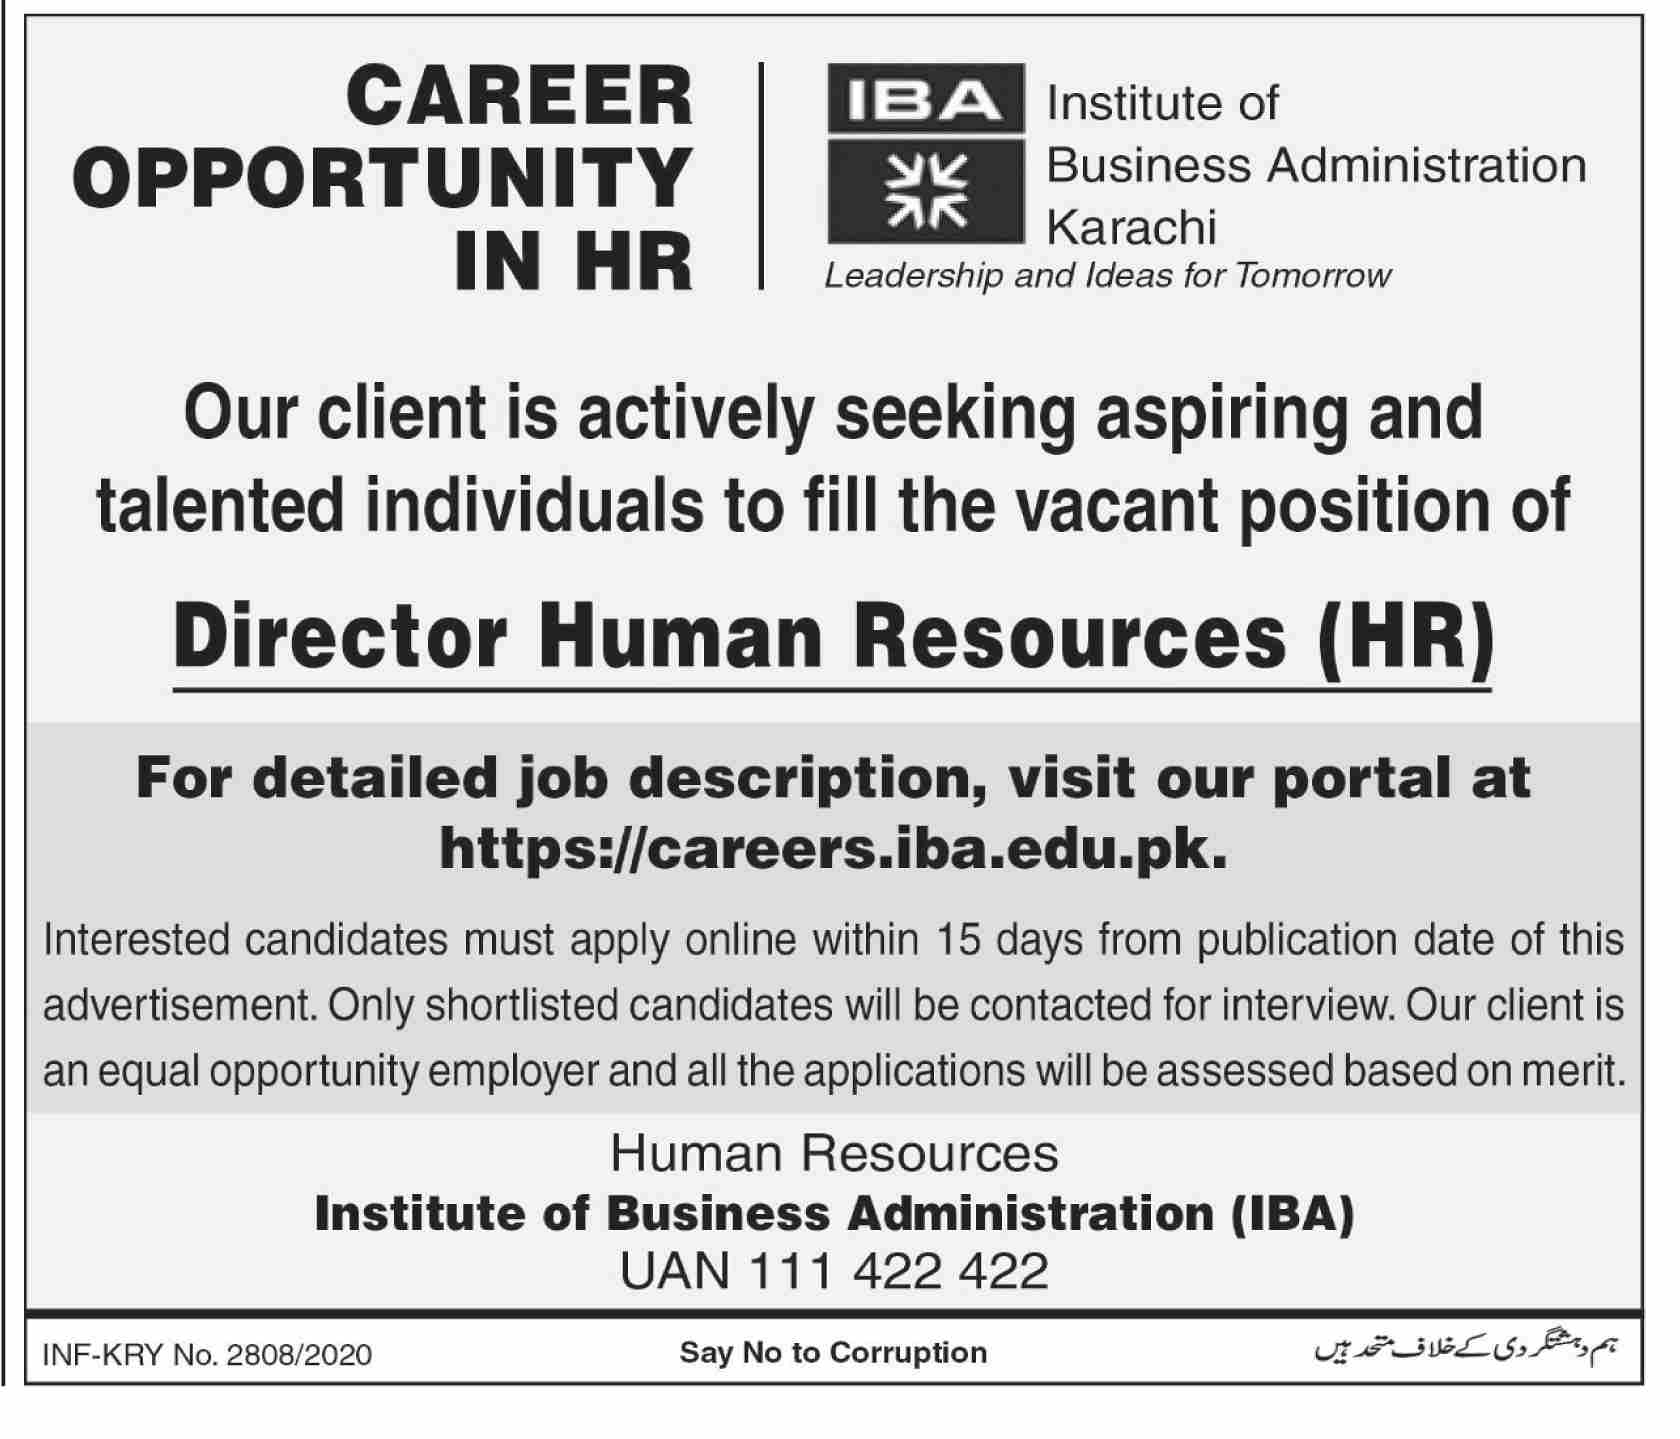 Institute Of Business Administration IBA Jobs in Pakistan Jobs 2020-2021 - Apply Online - careers.iba.edu.pk